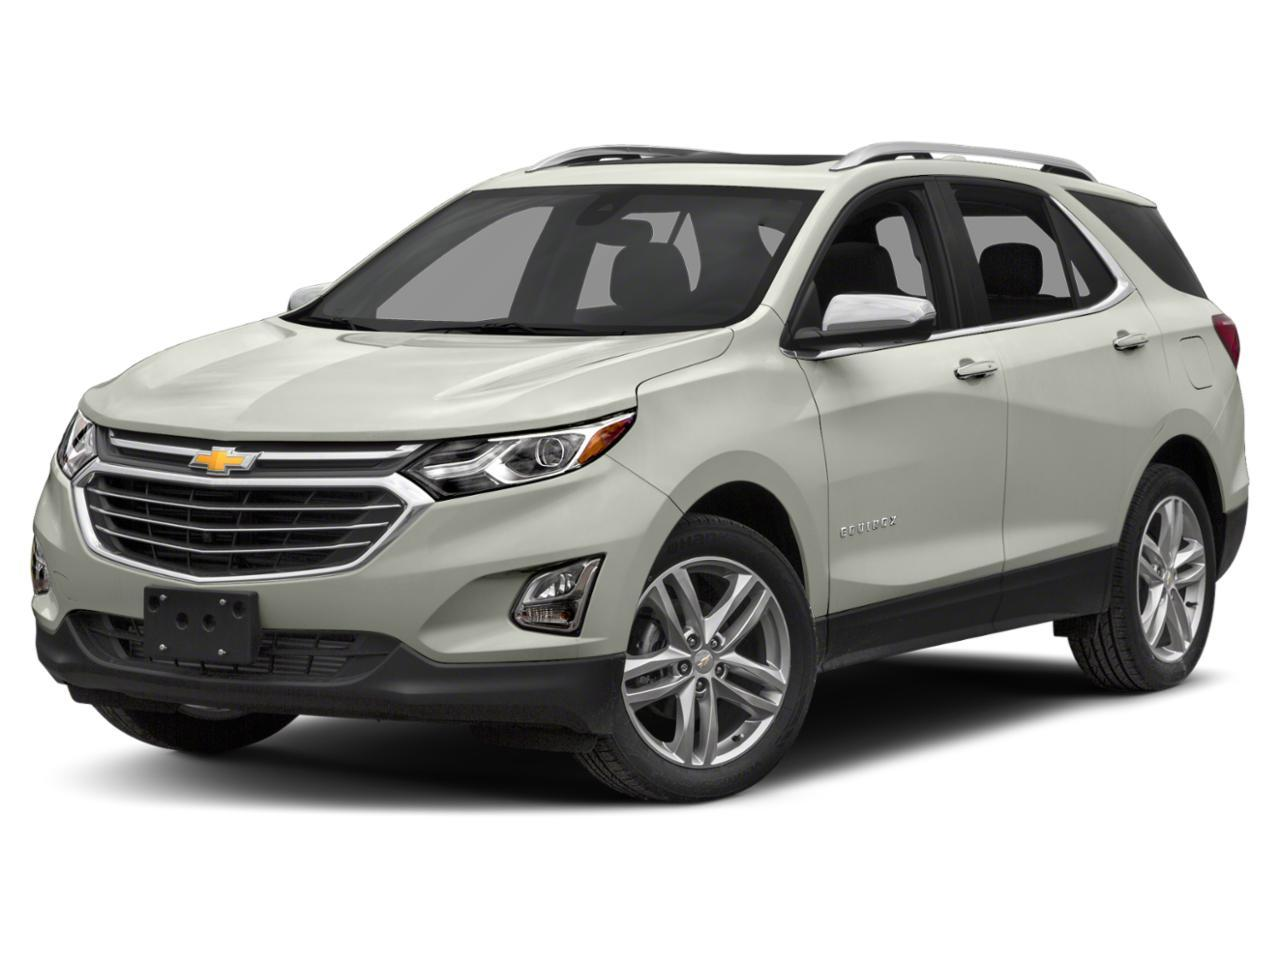 2018 Chevrolet Equinox Vehicle Photo in Smyrna, GA 30080